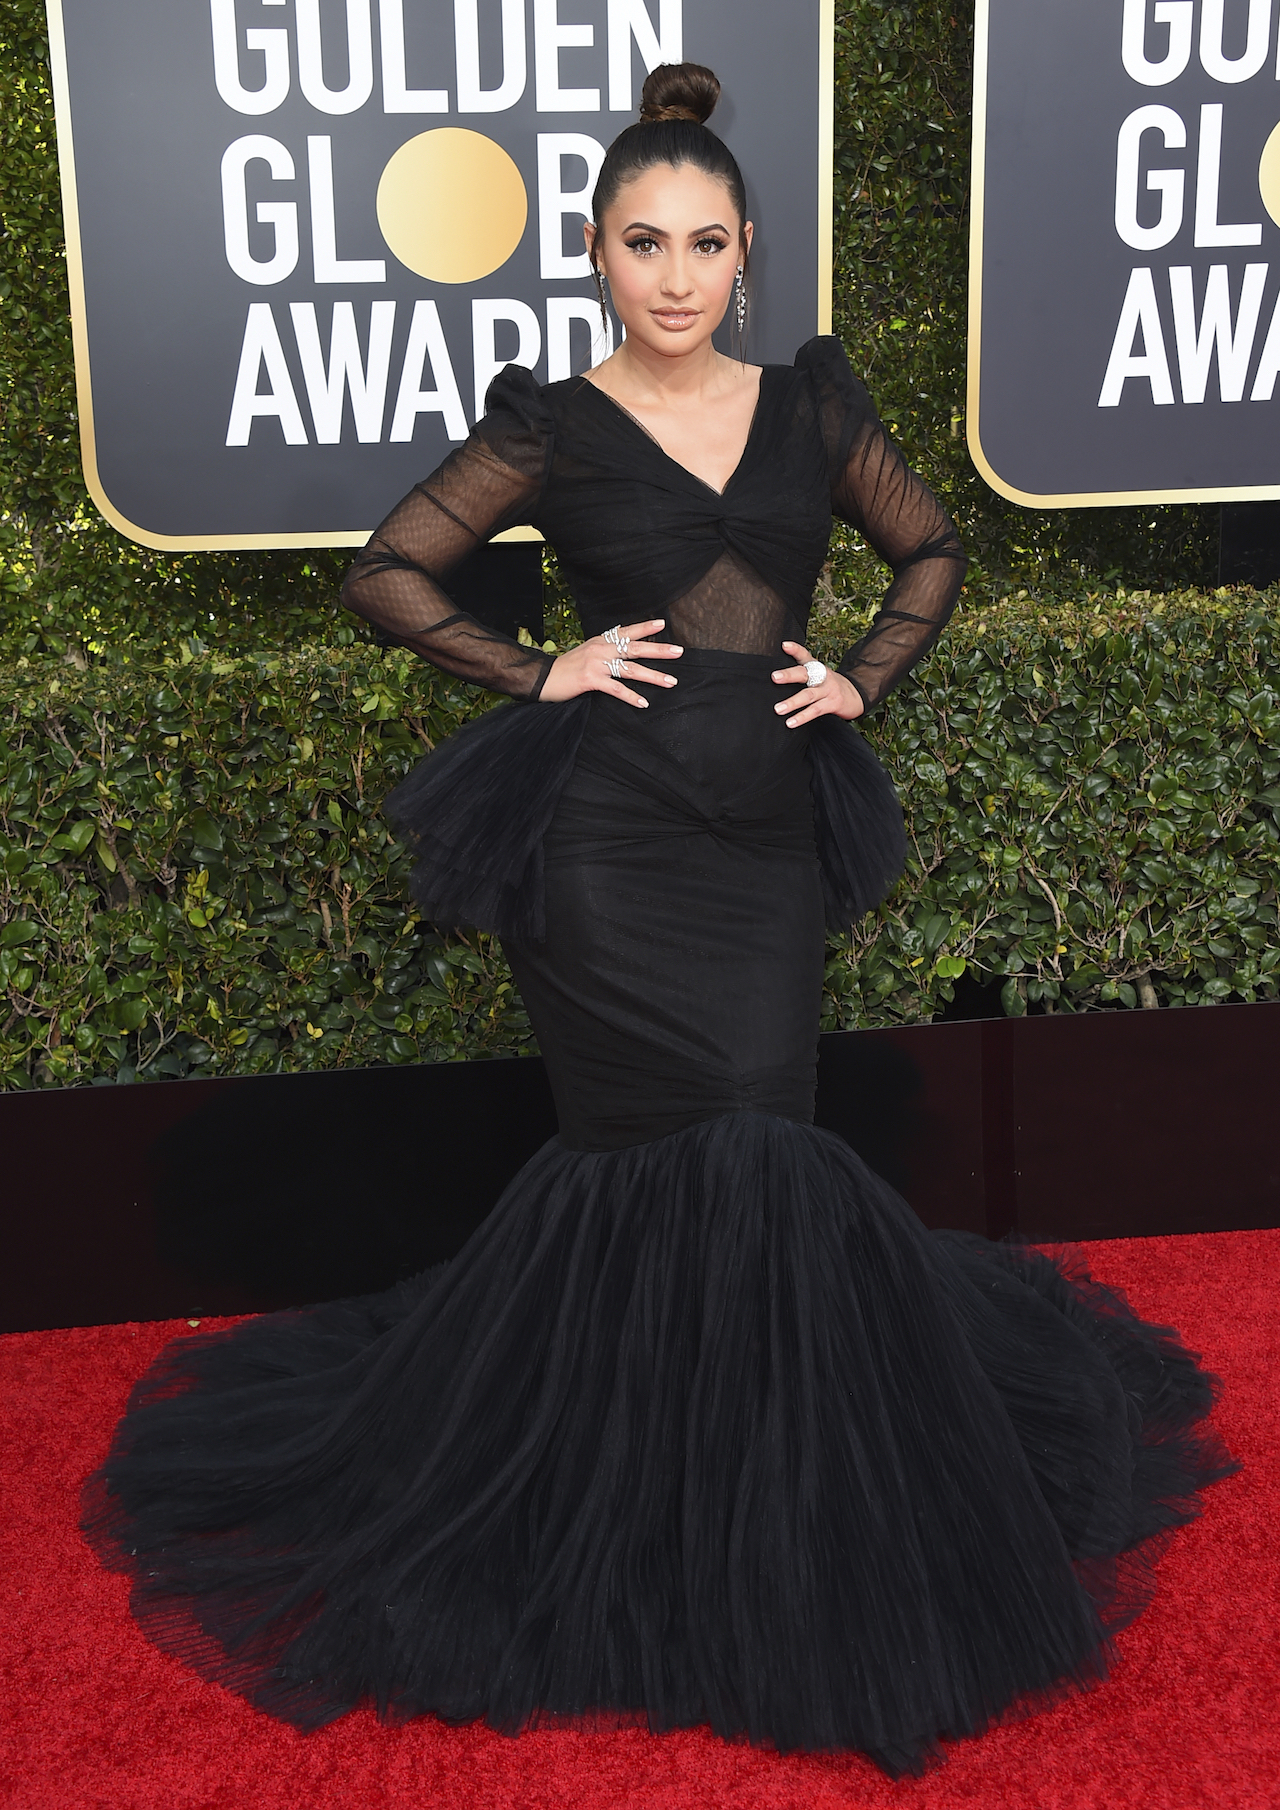 <div class='meta'><div class='origin-logo' data-origin='AP'></div><span class='caption-text' data-credit='Jordan Strauss/Invision/AP'>Francia Raisa arrives at the 76th annual Golden Globe Awards at the Beverly Hilton Hotel on Sunday, Jan. 6, 2019, in Beverly Hills, Calif.</span></div>